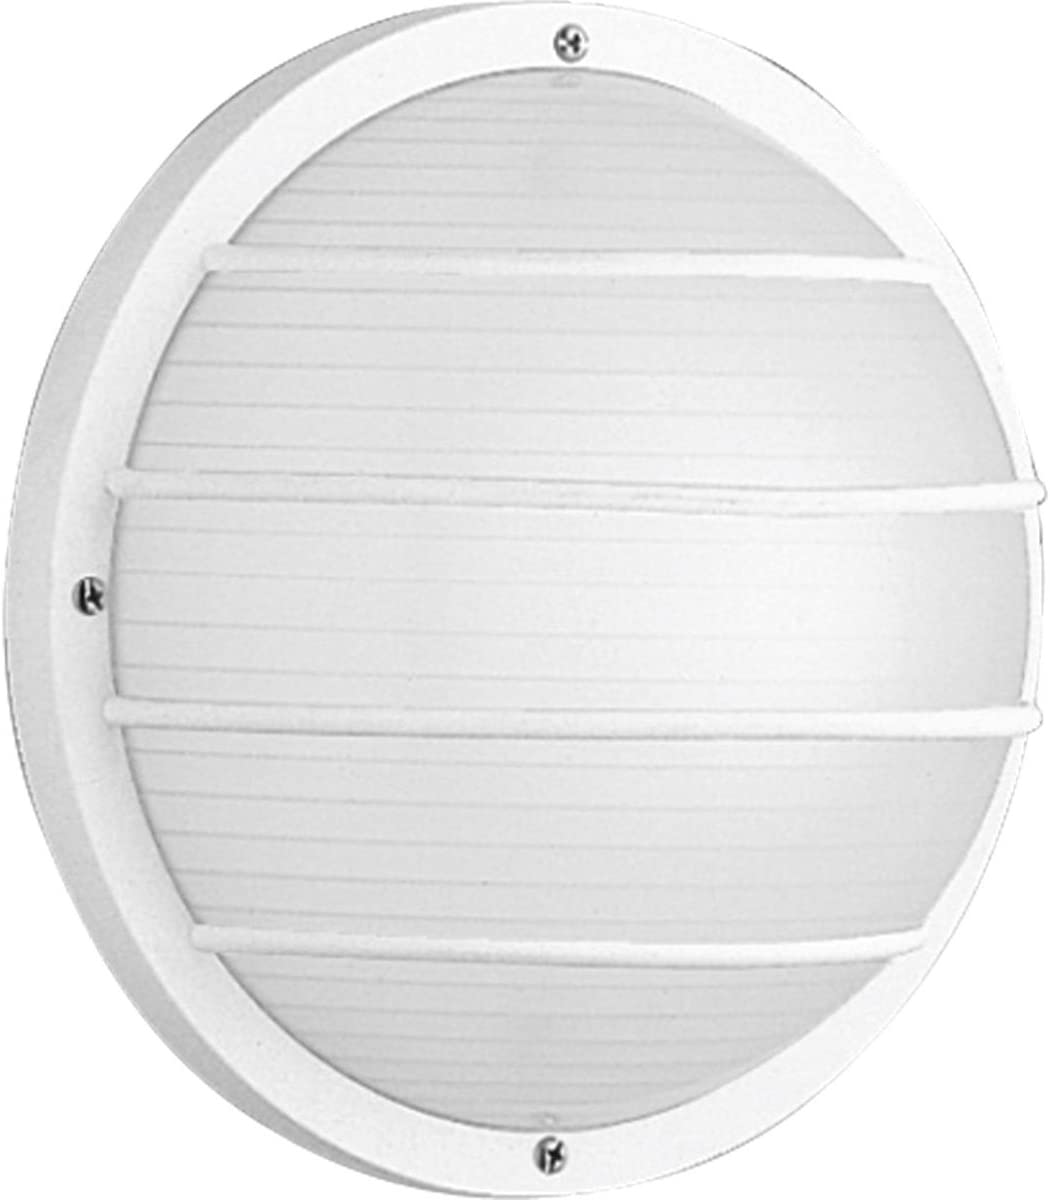 Progress Lighting P5703-30 Transitional One Light Wall or Ceiling Mount from Polycarbonate Outdoor Collection in White Finish, 10-Inch Width x 10-Inch Height